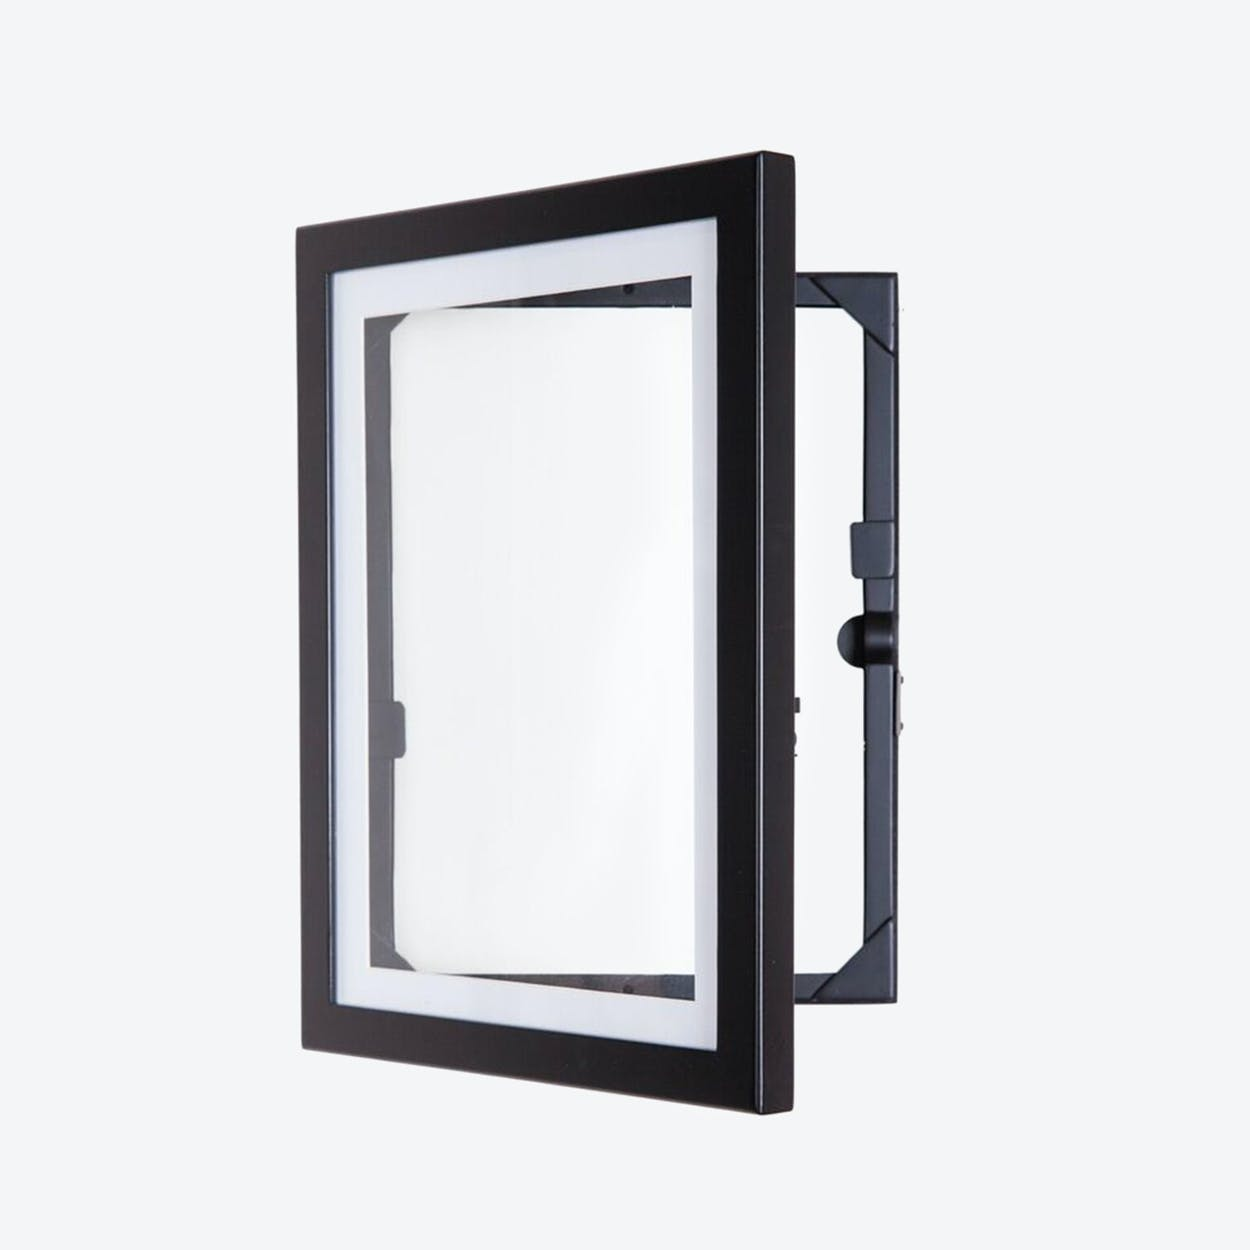 Art Cabinet and Frame for 50 Artworks - A4 in Black